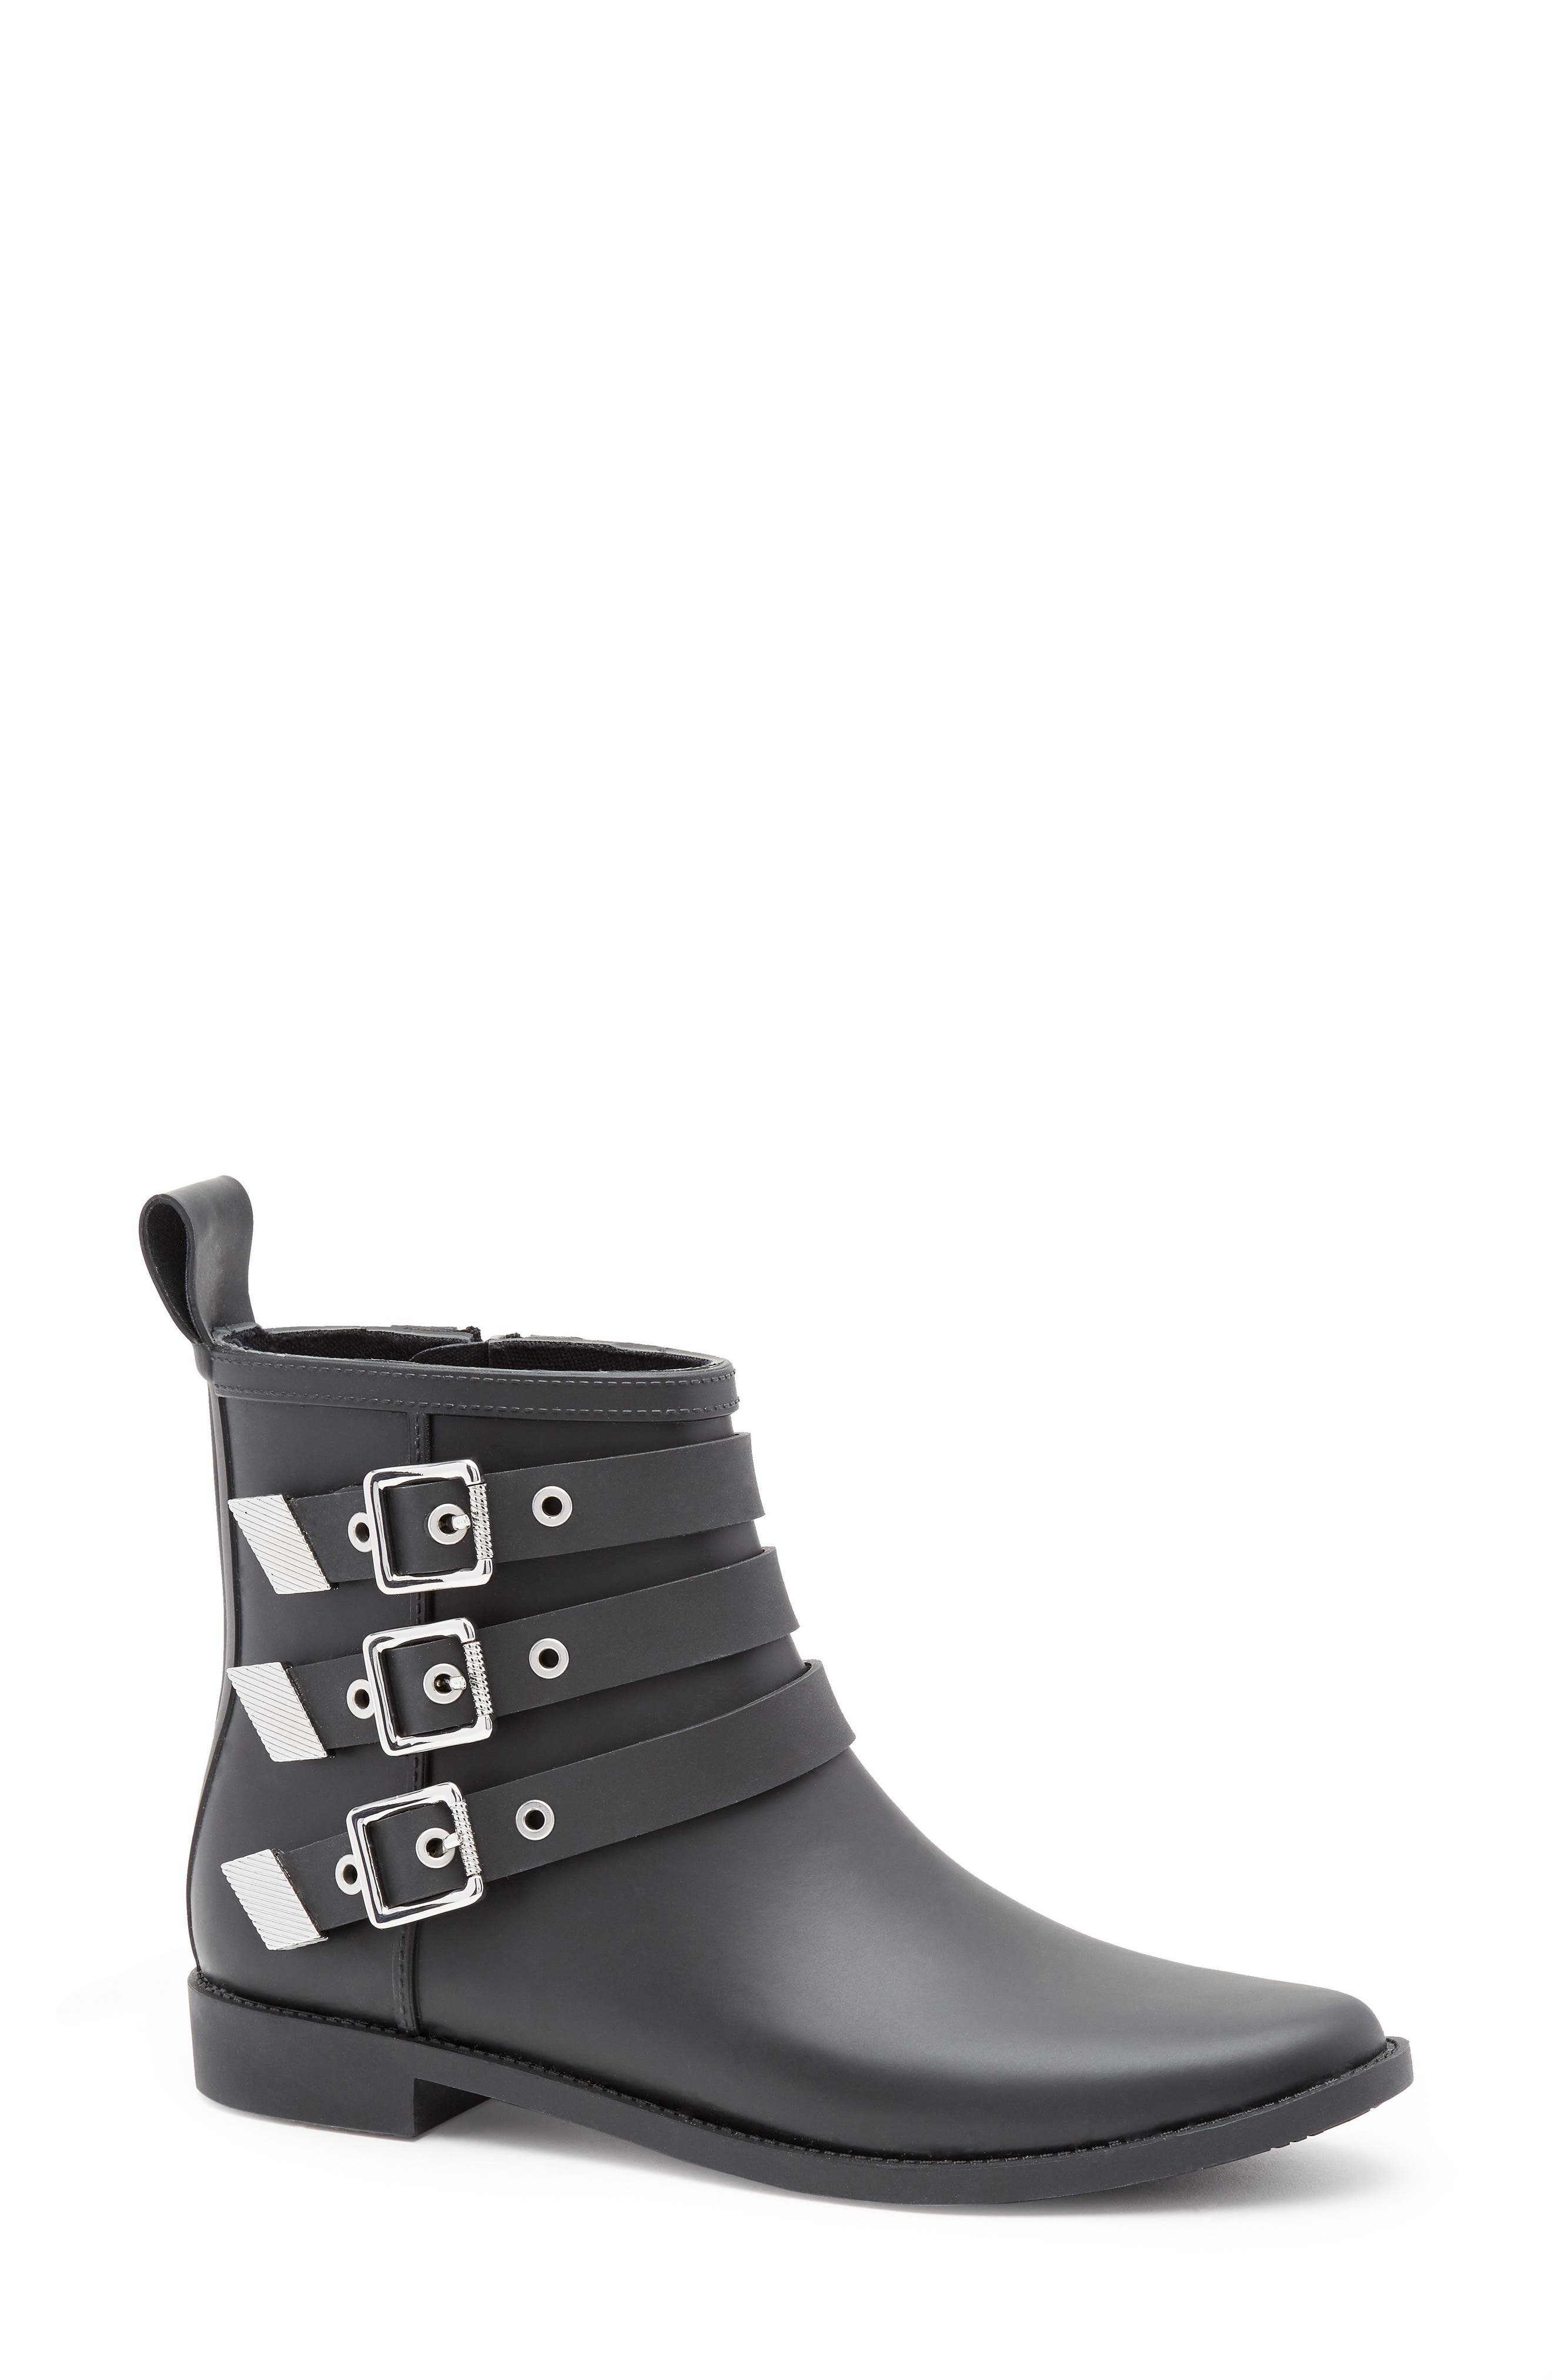 Nash Buckle Strap Rain Bootie,                         Main,                         color, Black/ Silver